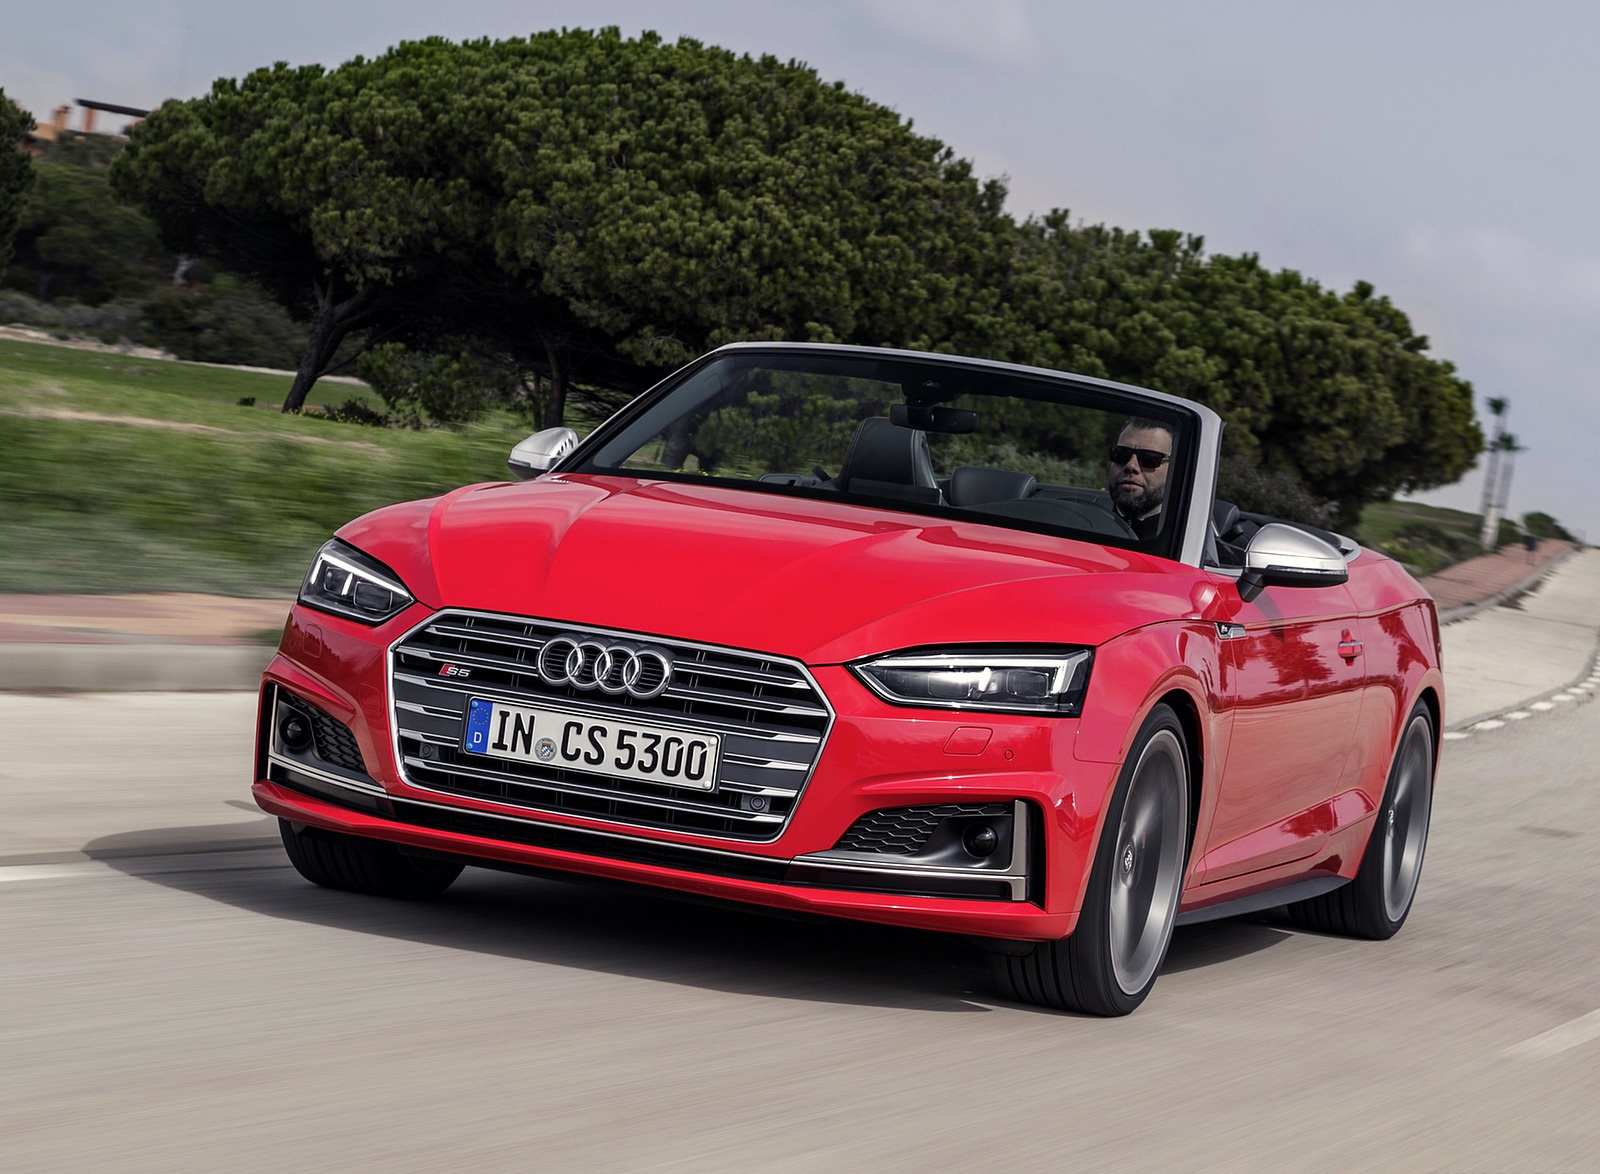 2018 Audi S5 Cabriolet (Color: Misano Red) Front Wallpaper (7)